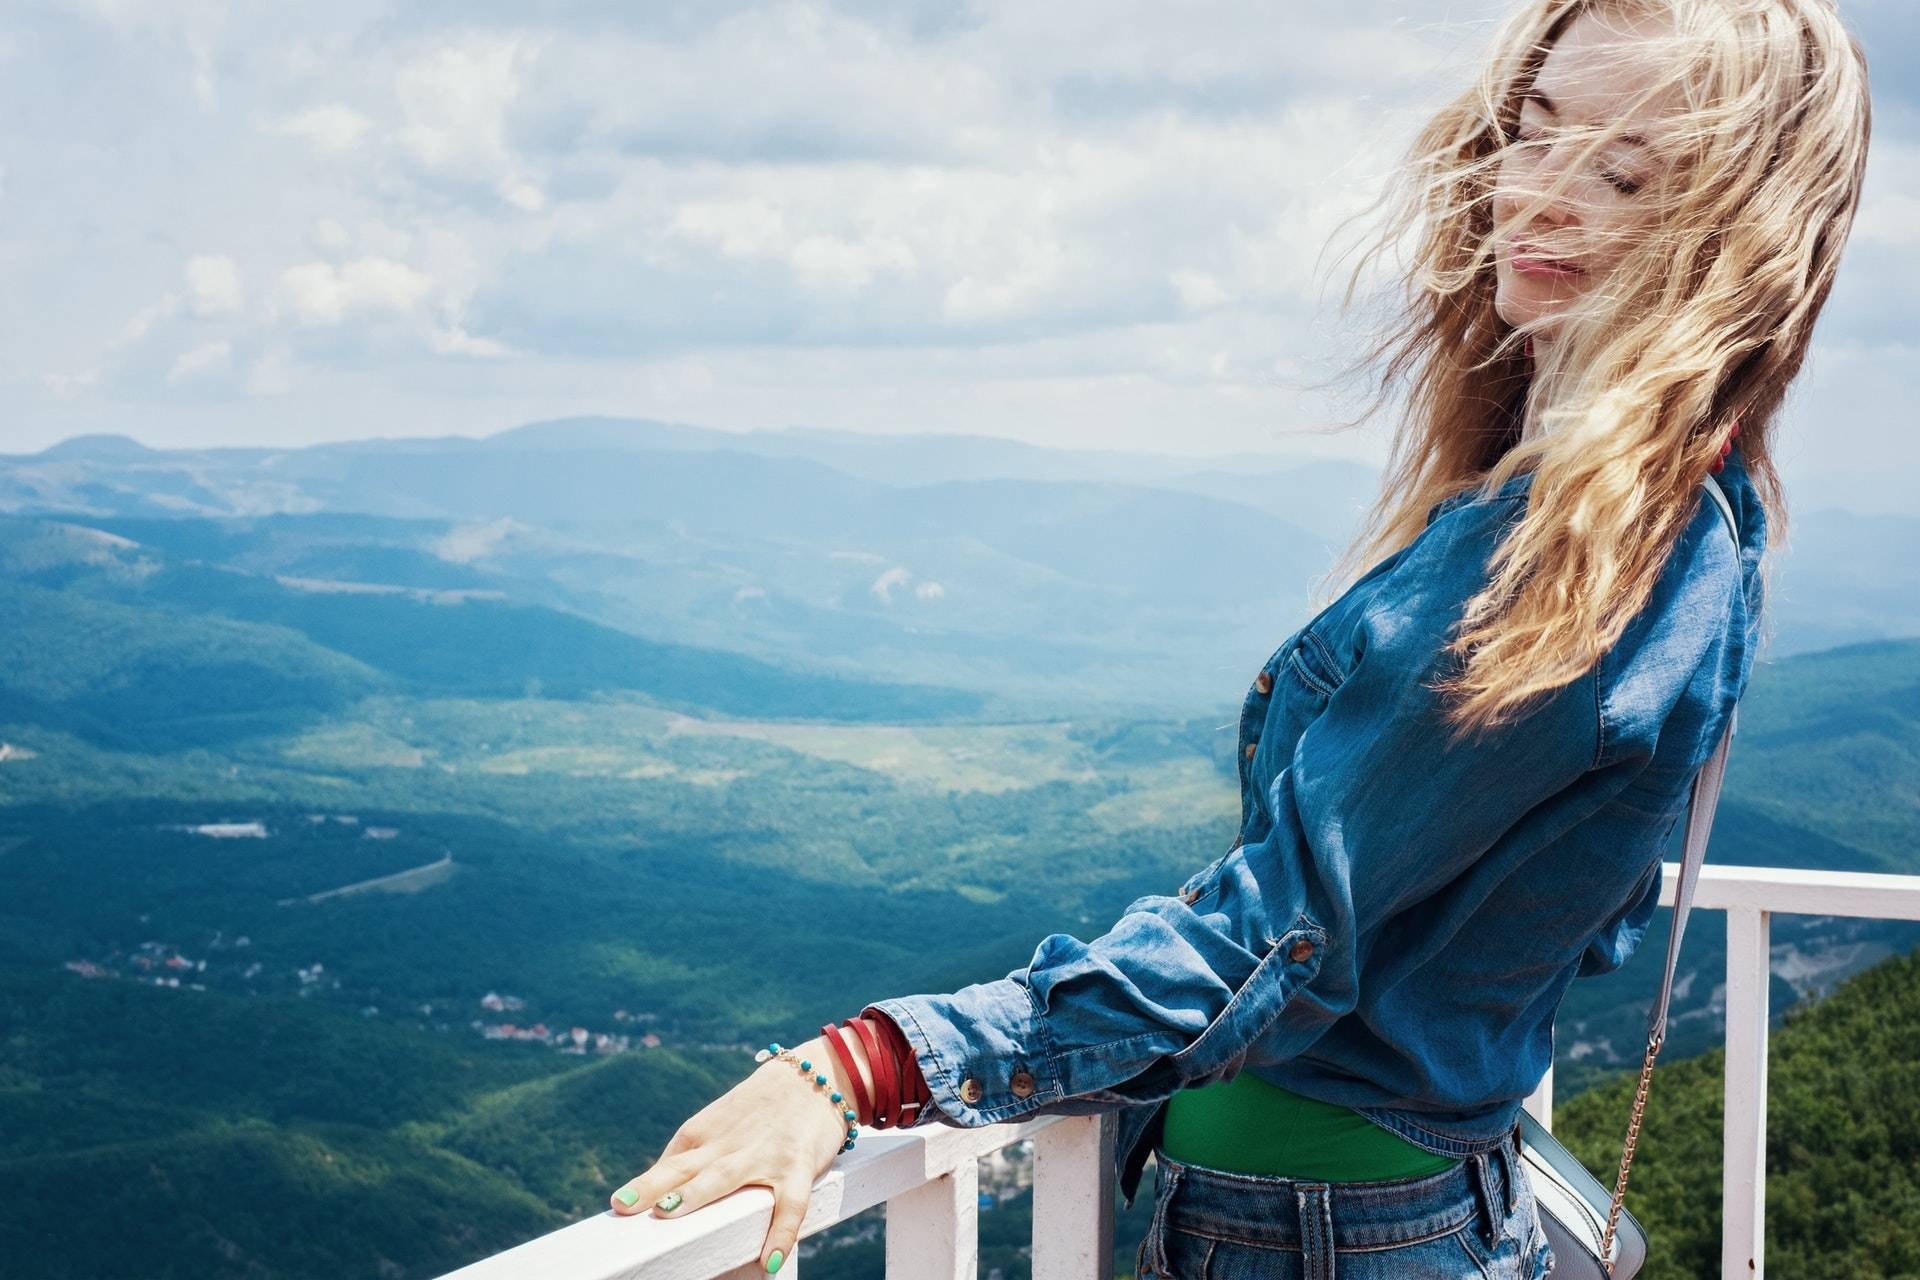 Woman leaning over railing with beautiful view